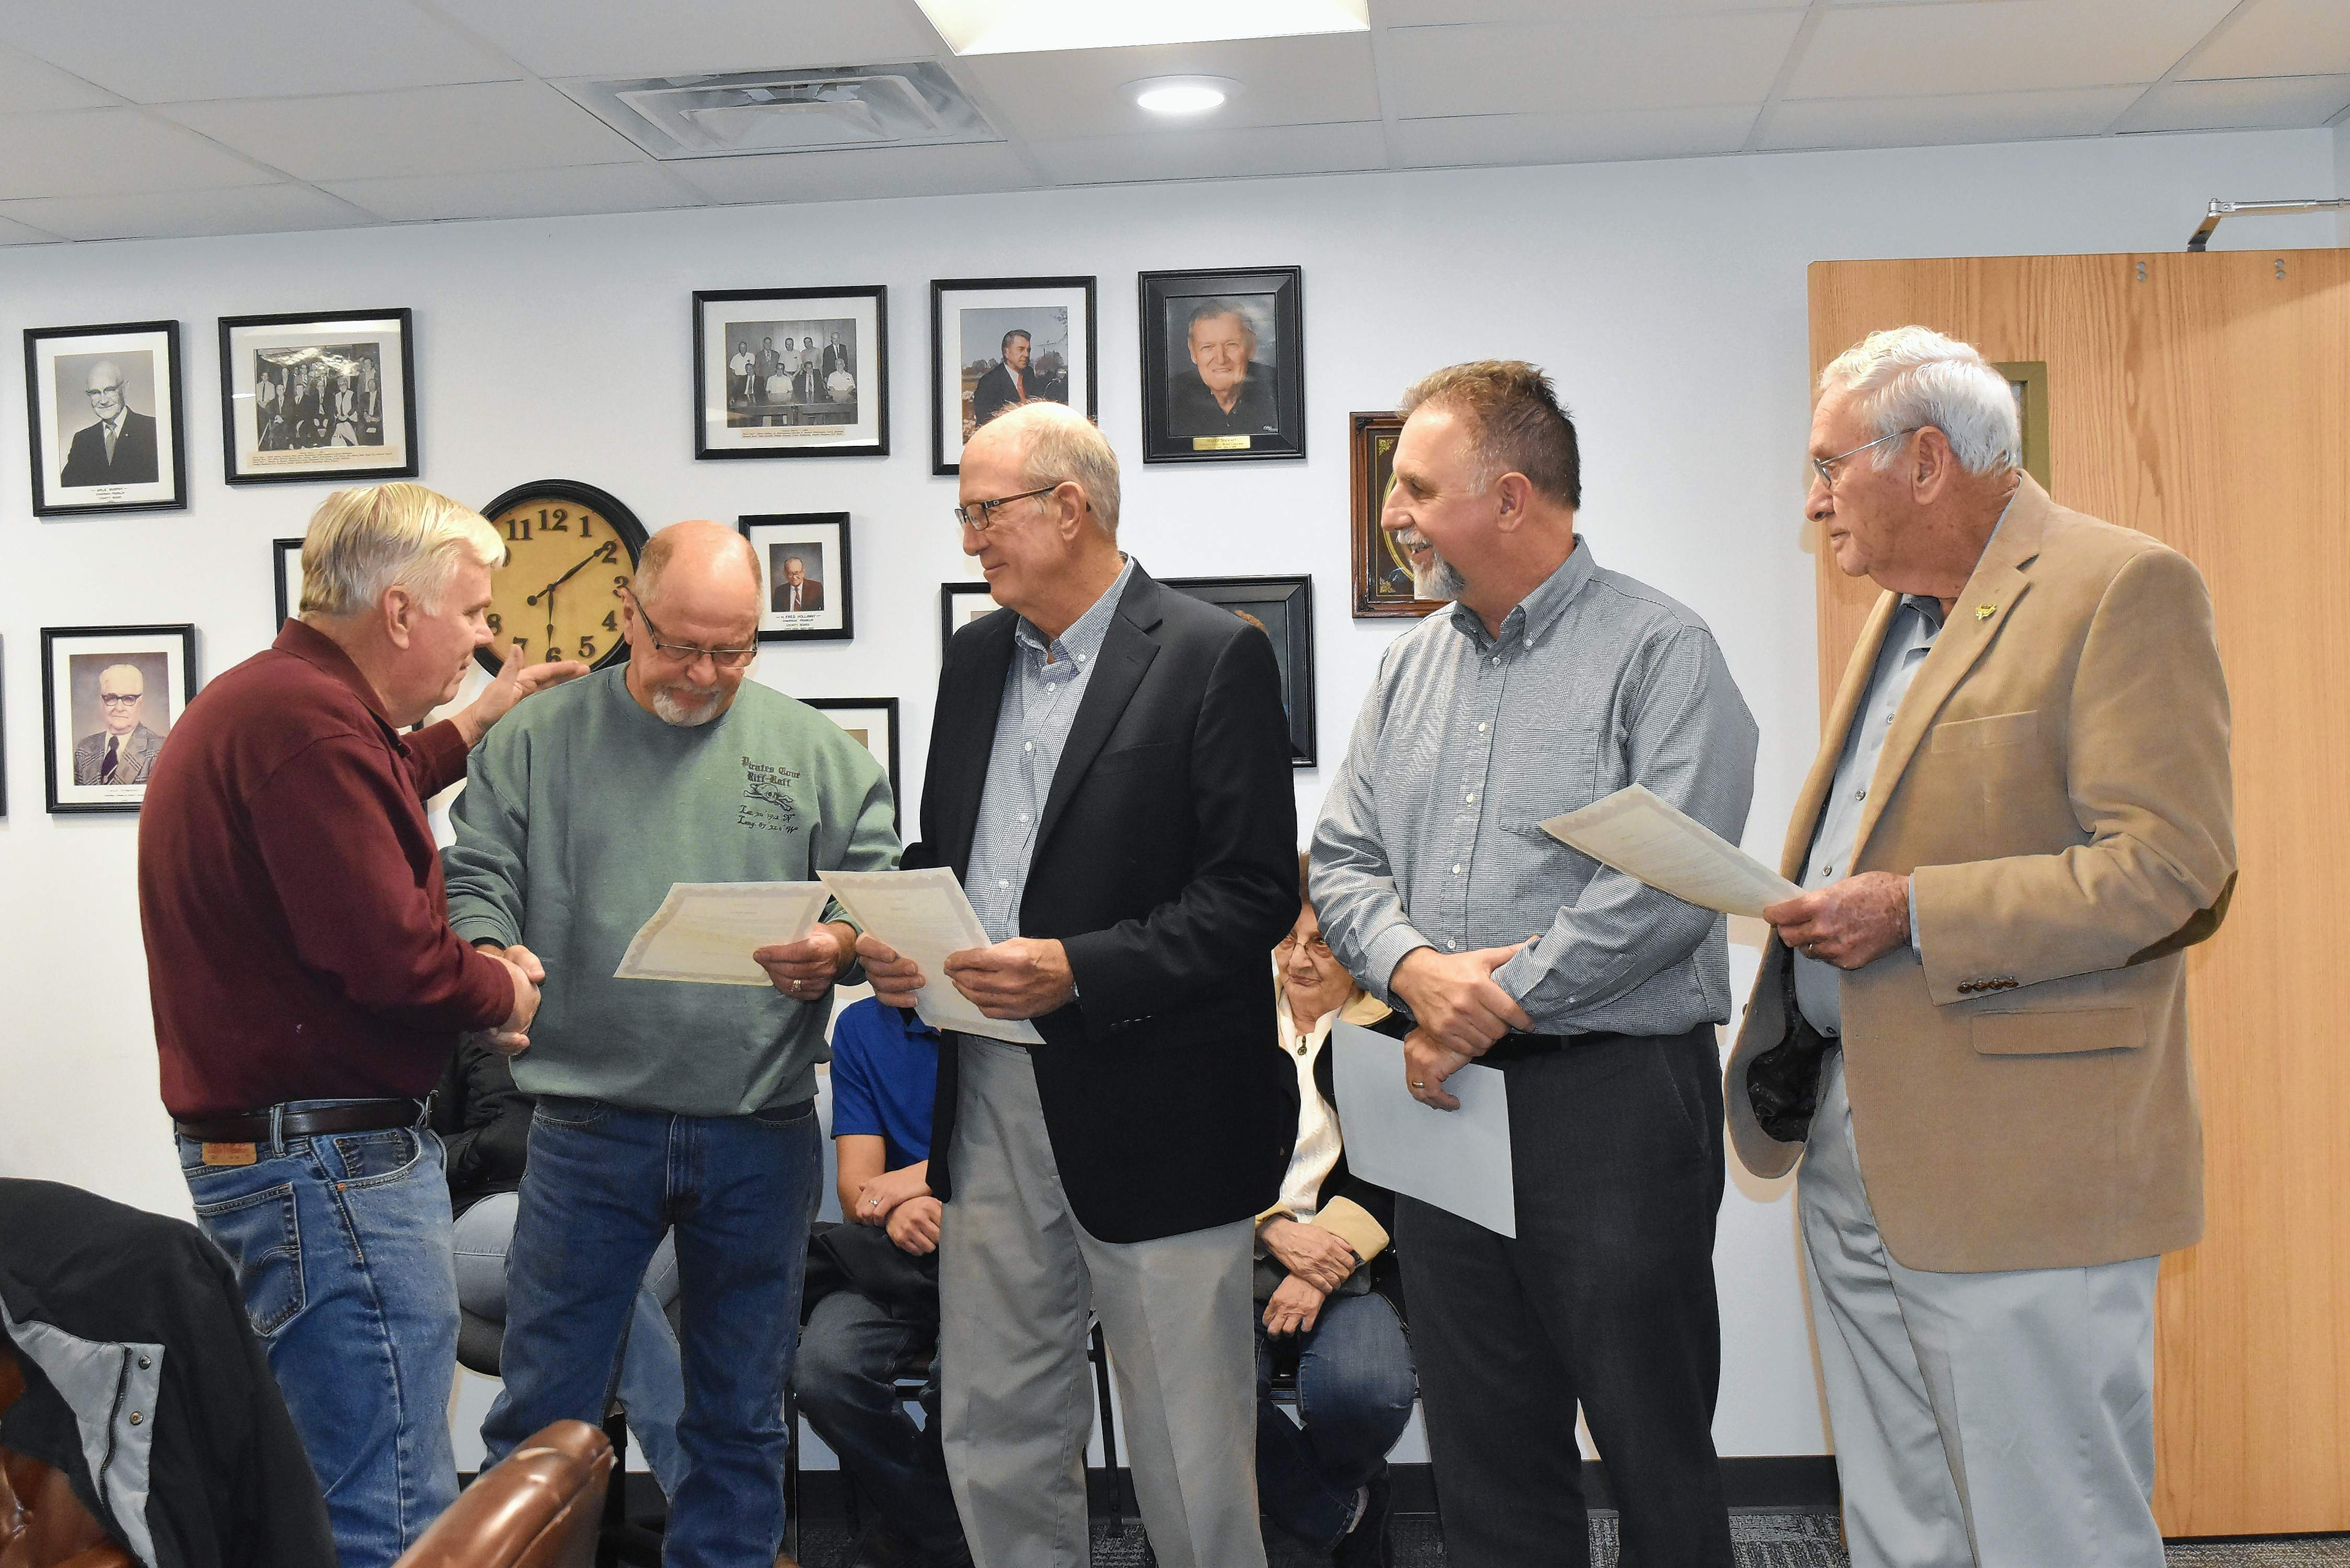 Franklin County Board Chairman Randall Crocker presents certificates of appreciation to board members (from left) Danny Melvin, Tom Vaughn, Robert Pierce and David Rea during the Nov. 20 meeting. Vaughn and Rea retired from the board; Melvin and Pierce were defeated in the Nov. 6 election.